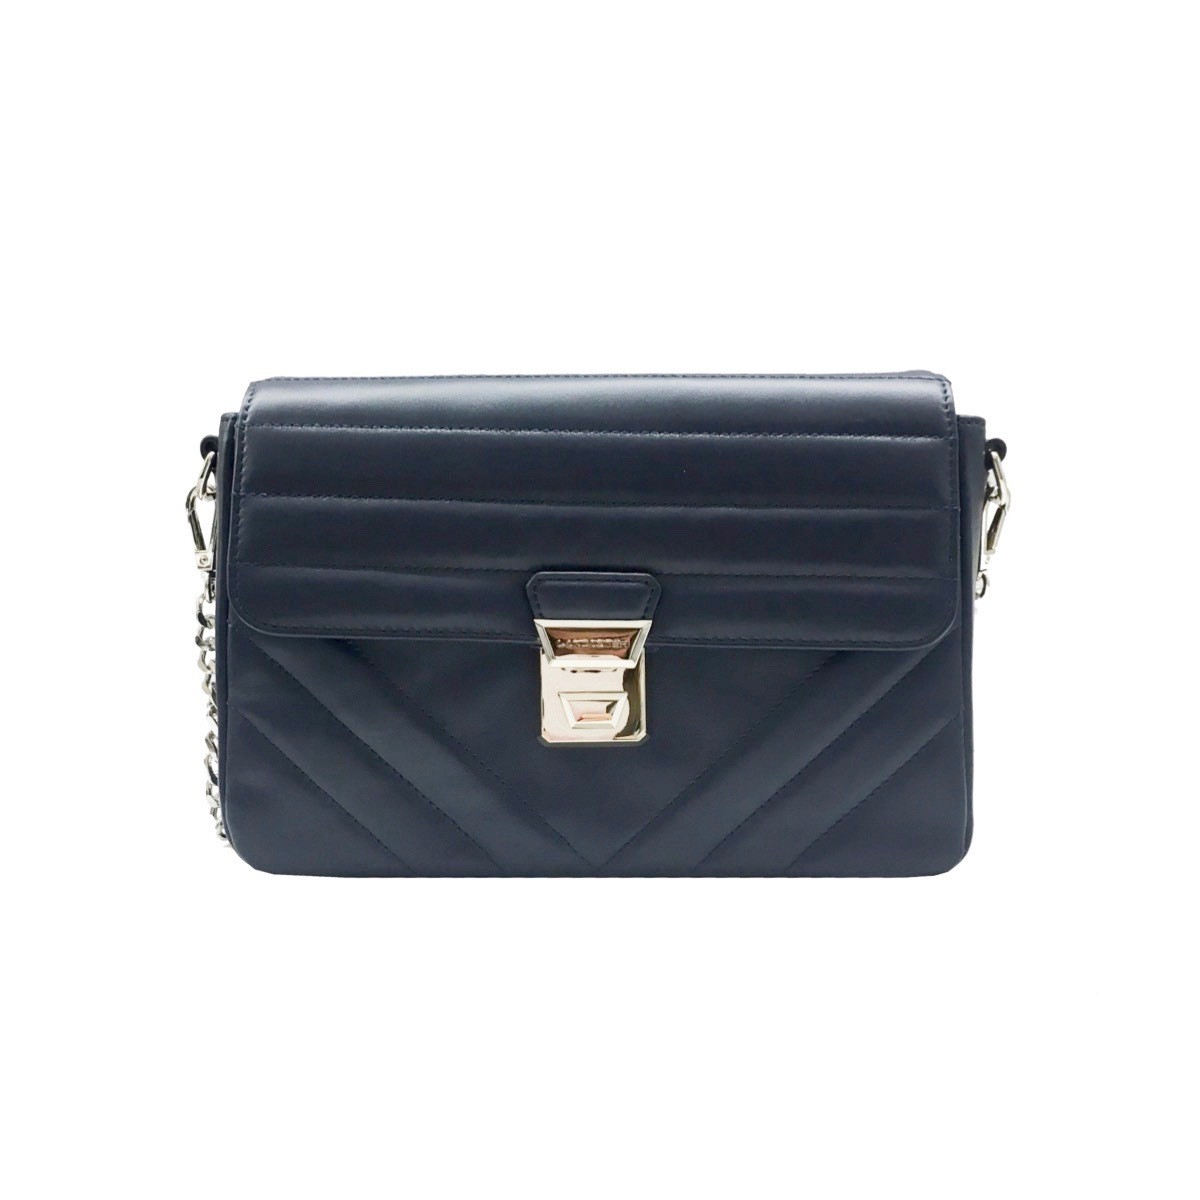 LANCASTER - Large crossbody bag with flap - Bleu Fonce